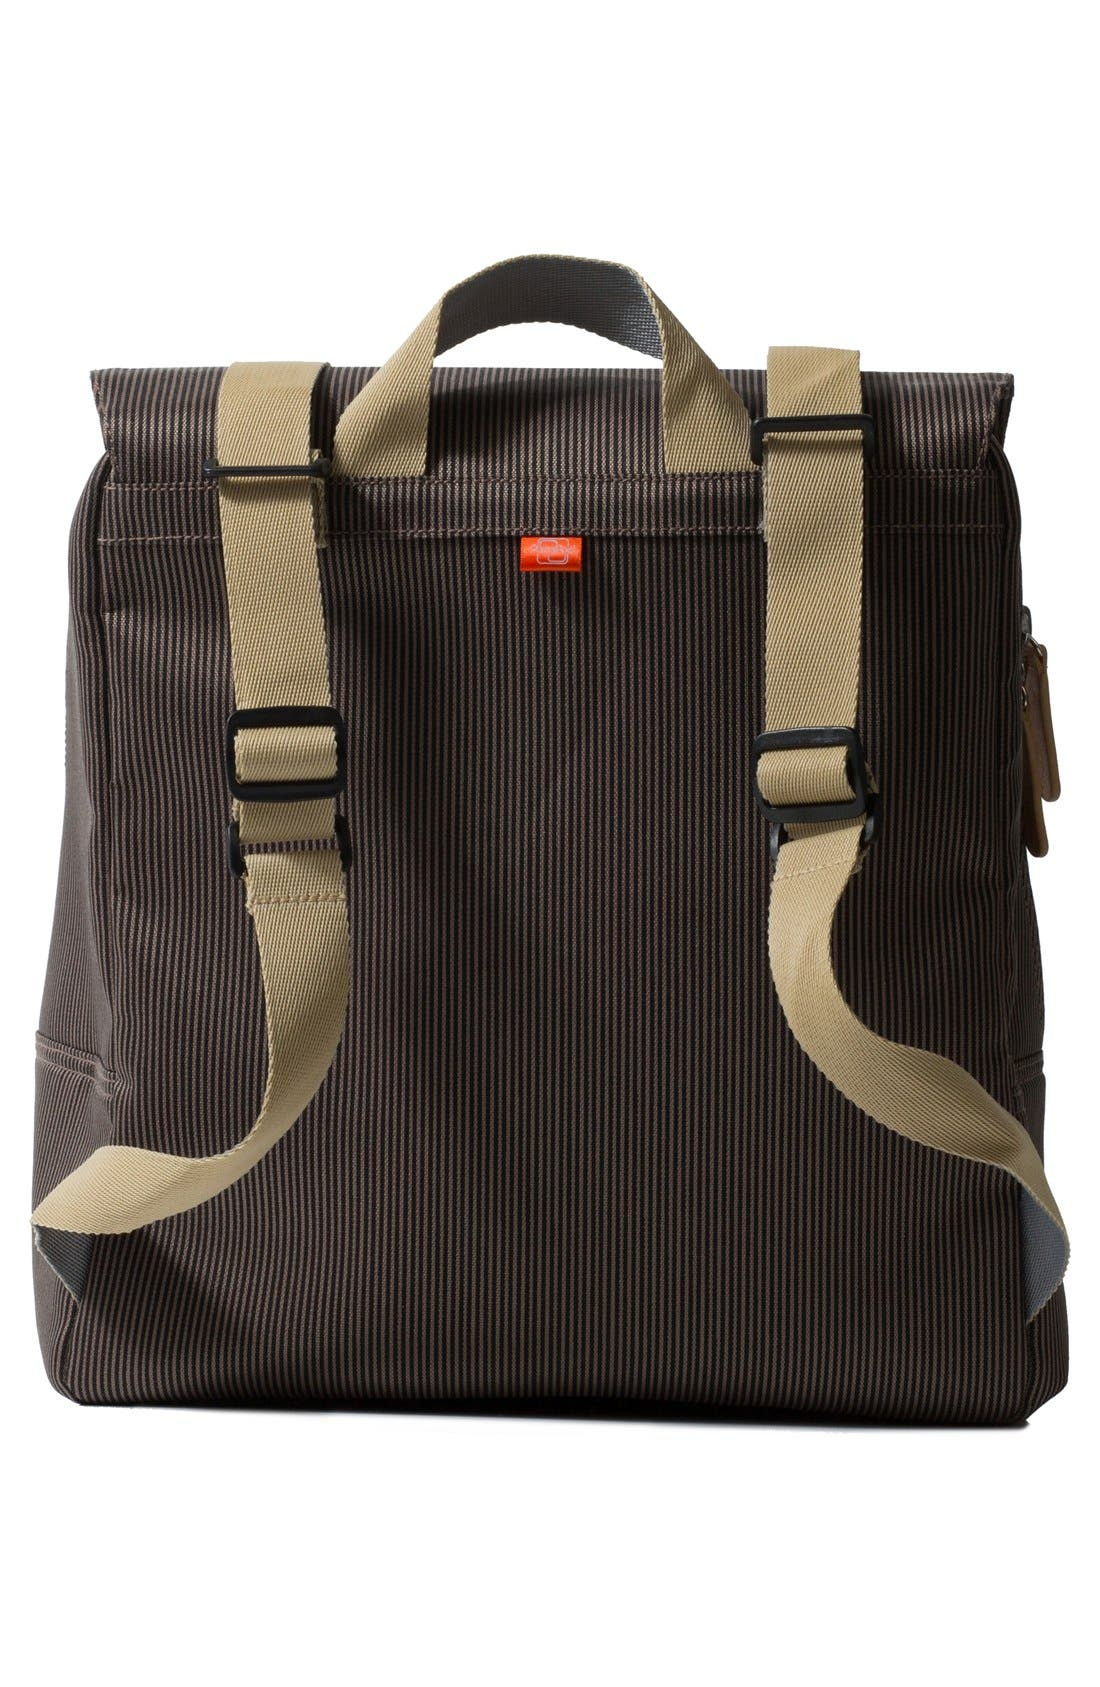 'Hastings' Diaper Bag,                             Alternate thumbnail 2, color,                             Mocha